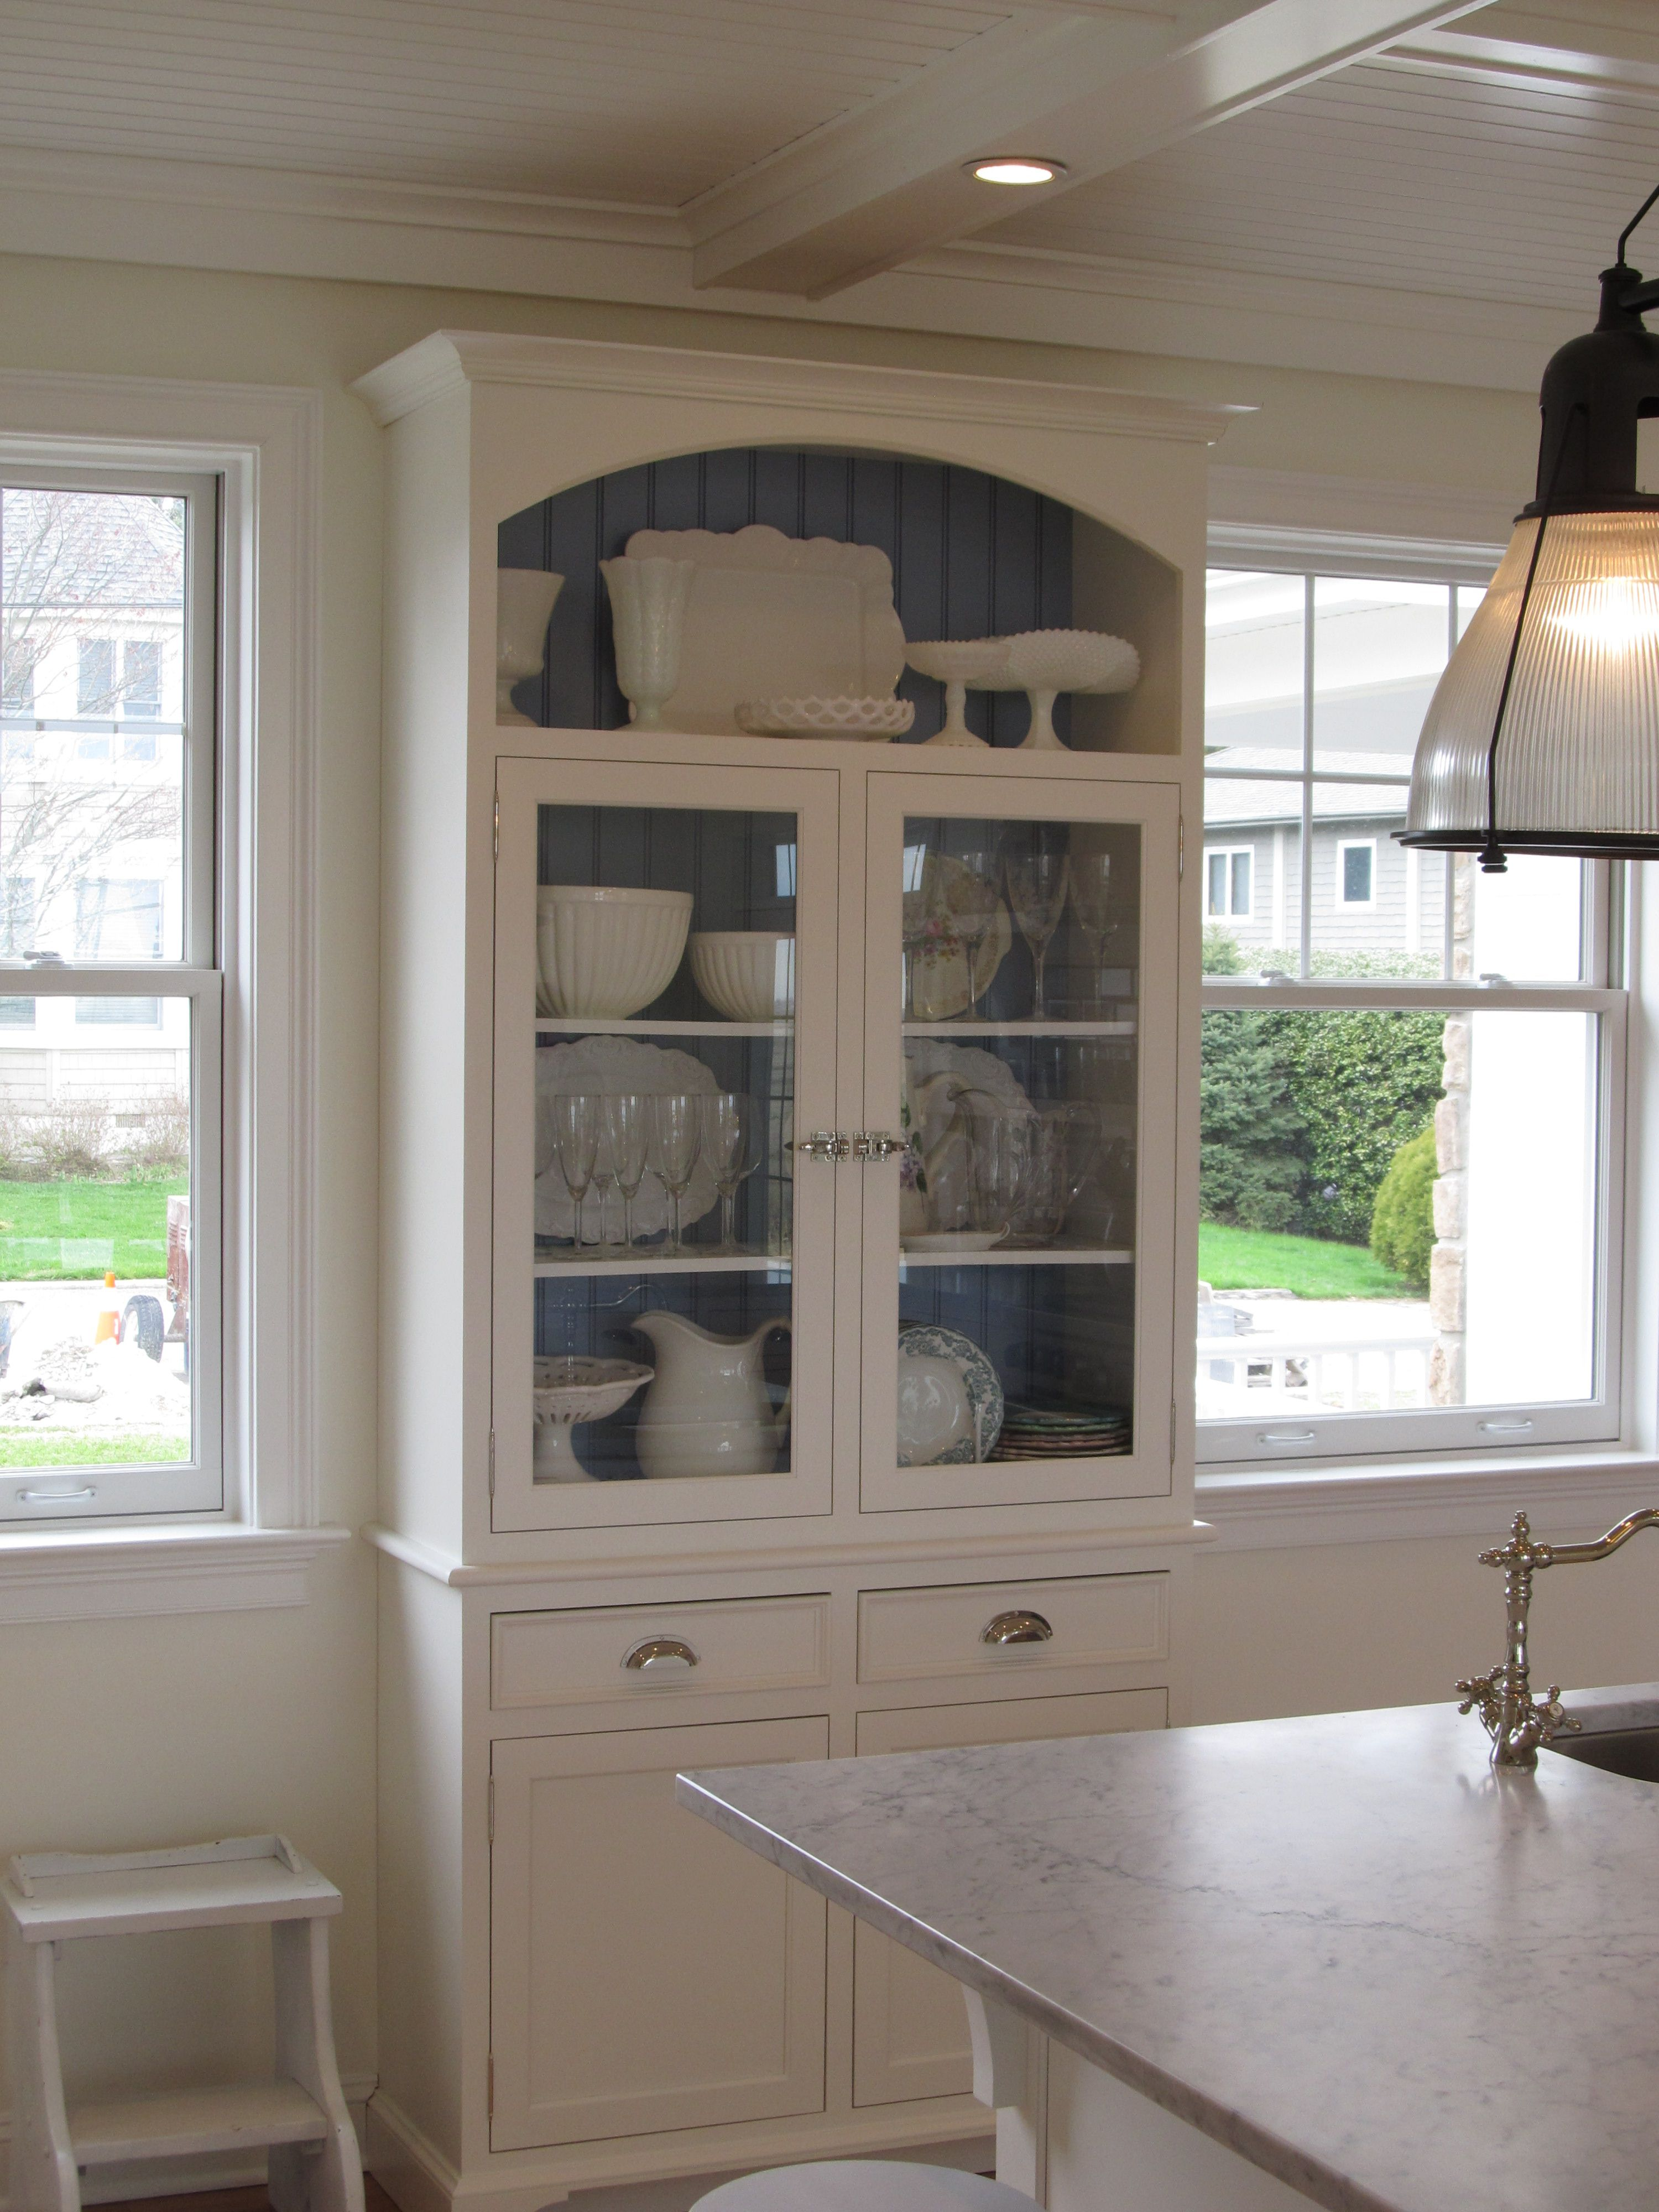 Custom Kitchen Designed By Churchville Kitchen U0026 Home Design, White Painted  Cabinetry, Wood Paneled